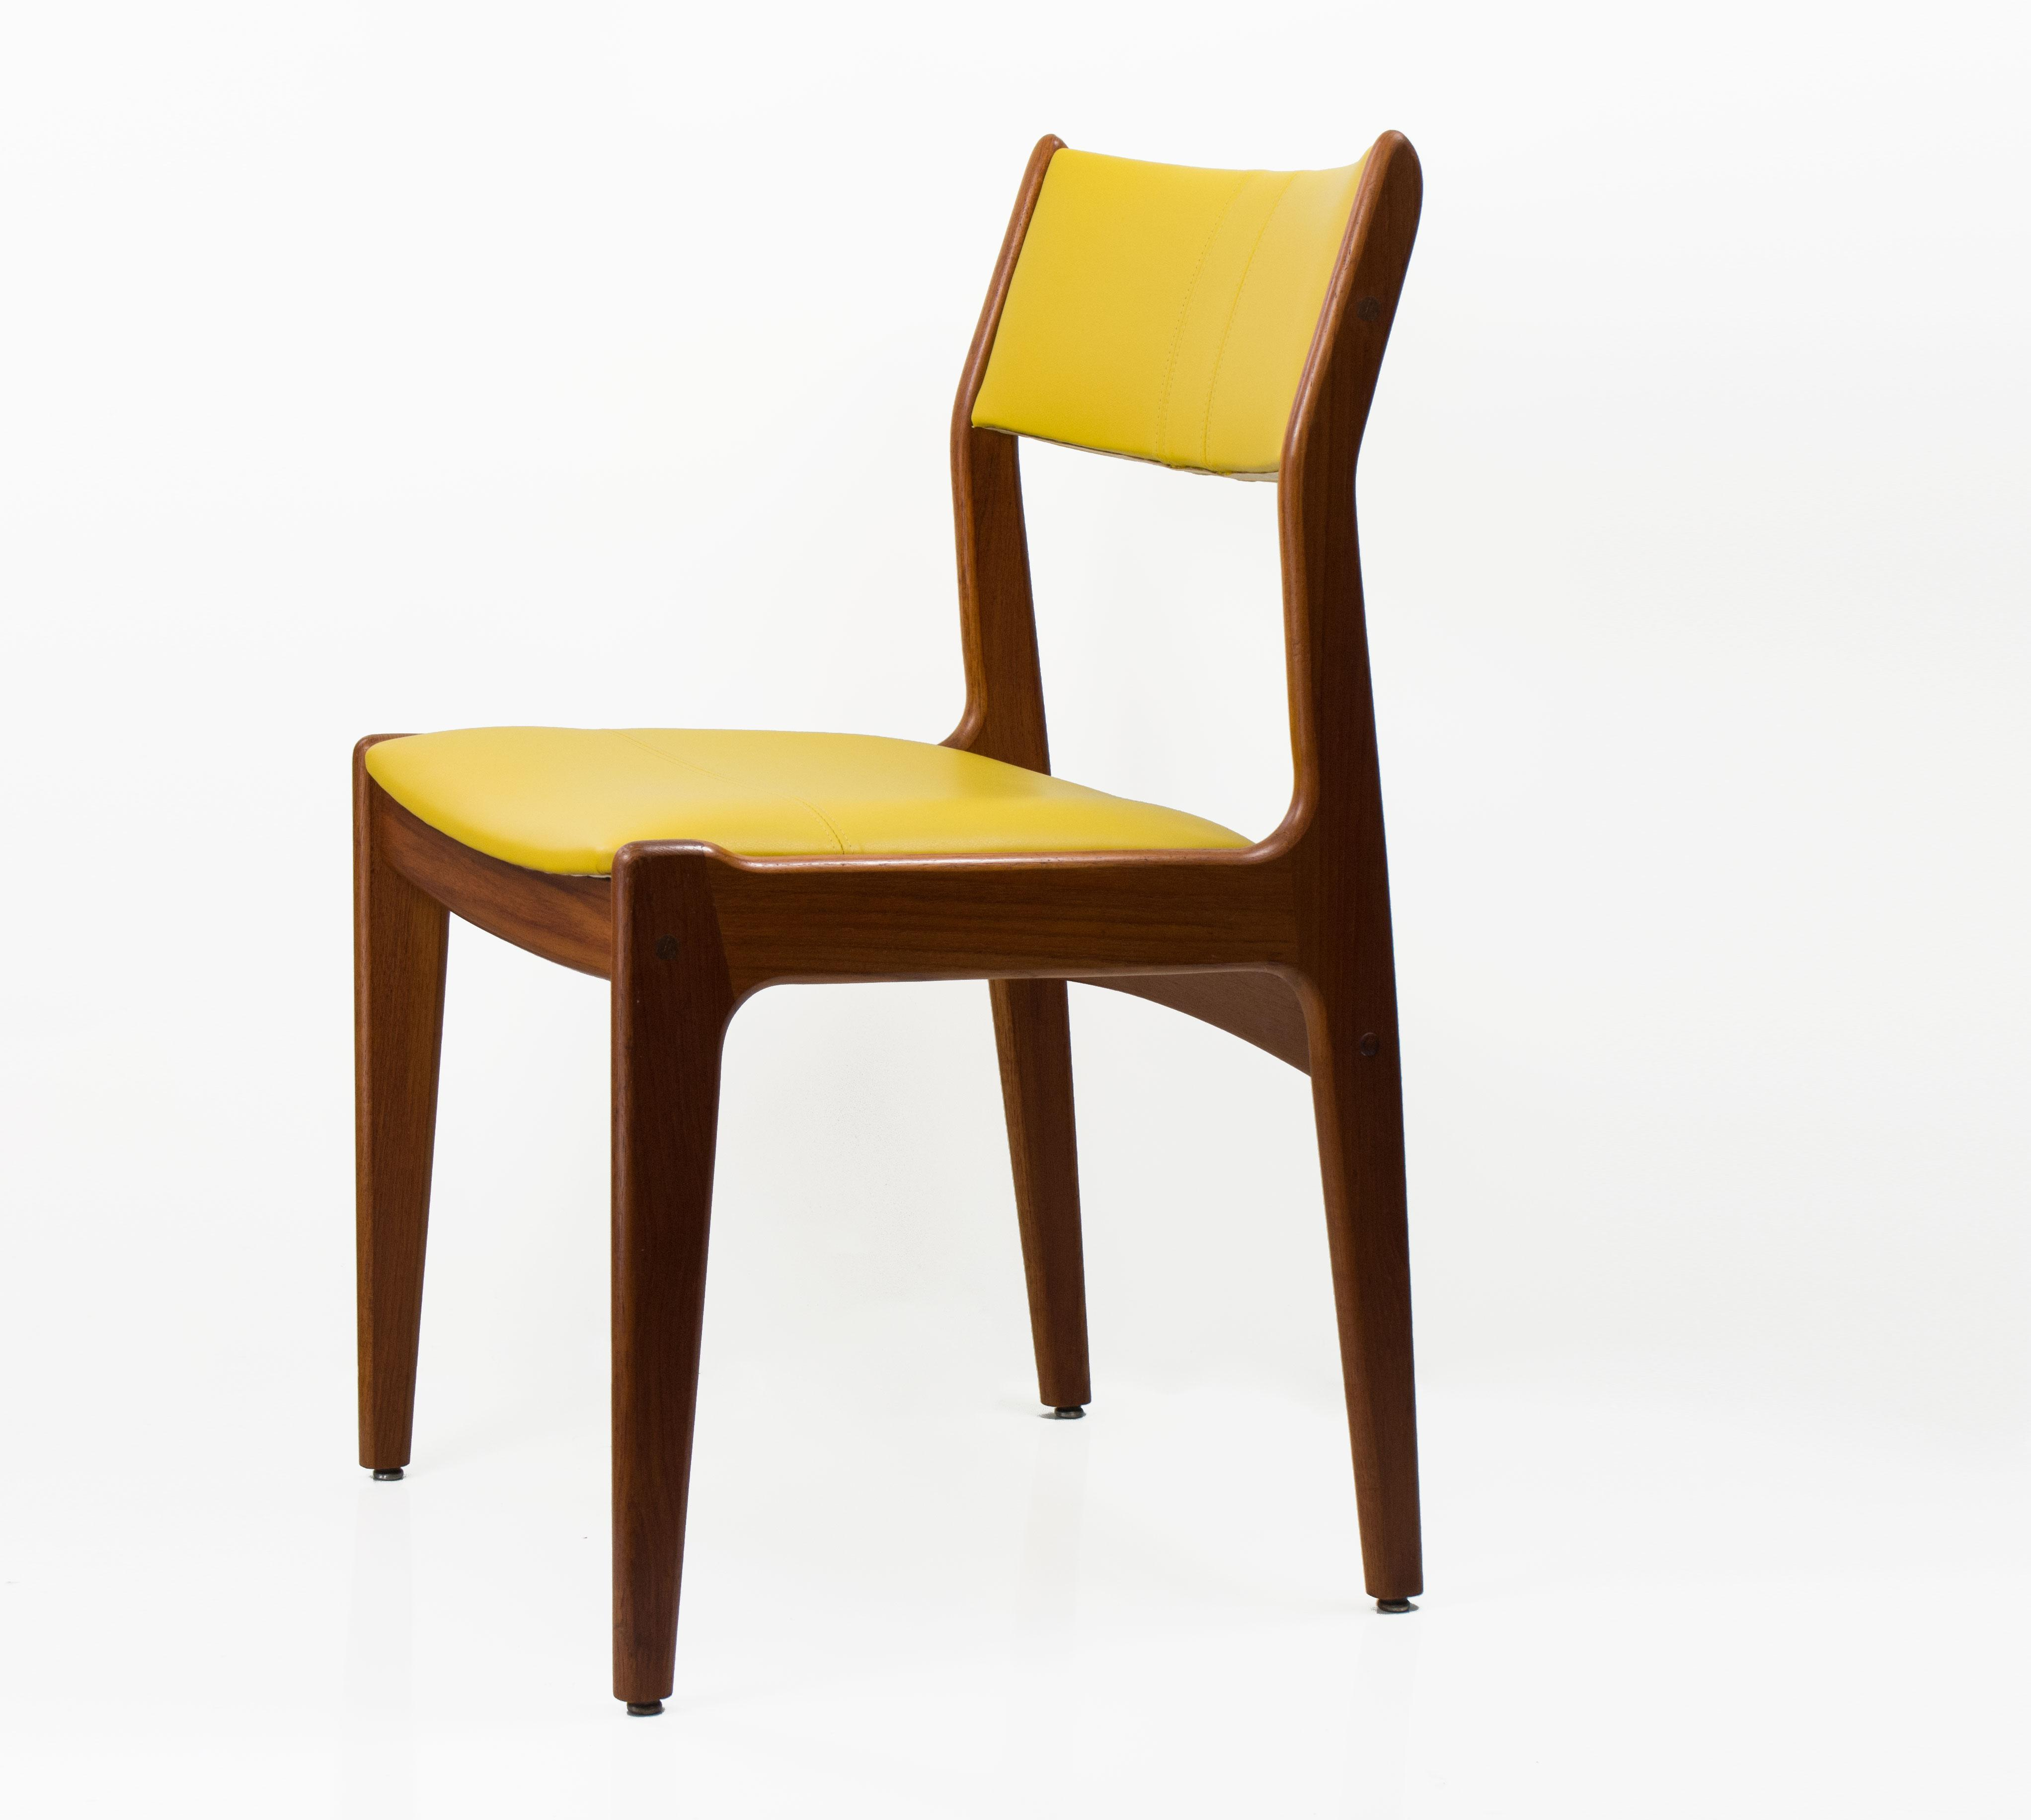 Superieur Danish Modern Mid Century Danish Style Leather U0026 Teak Chairs  Set Of 4 For